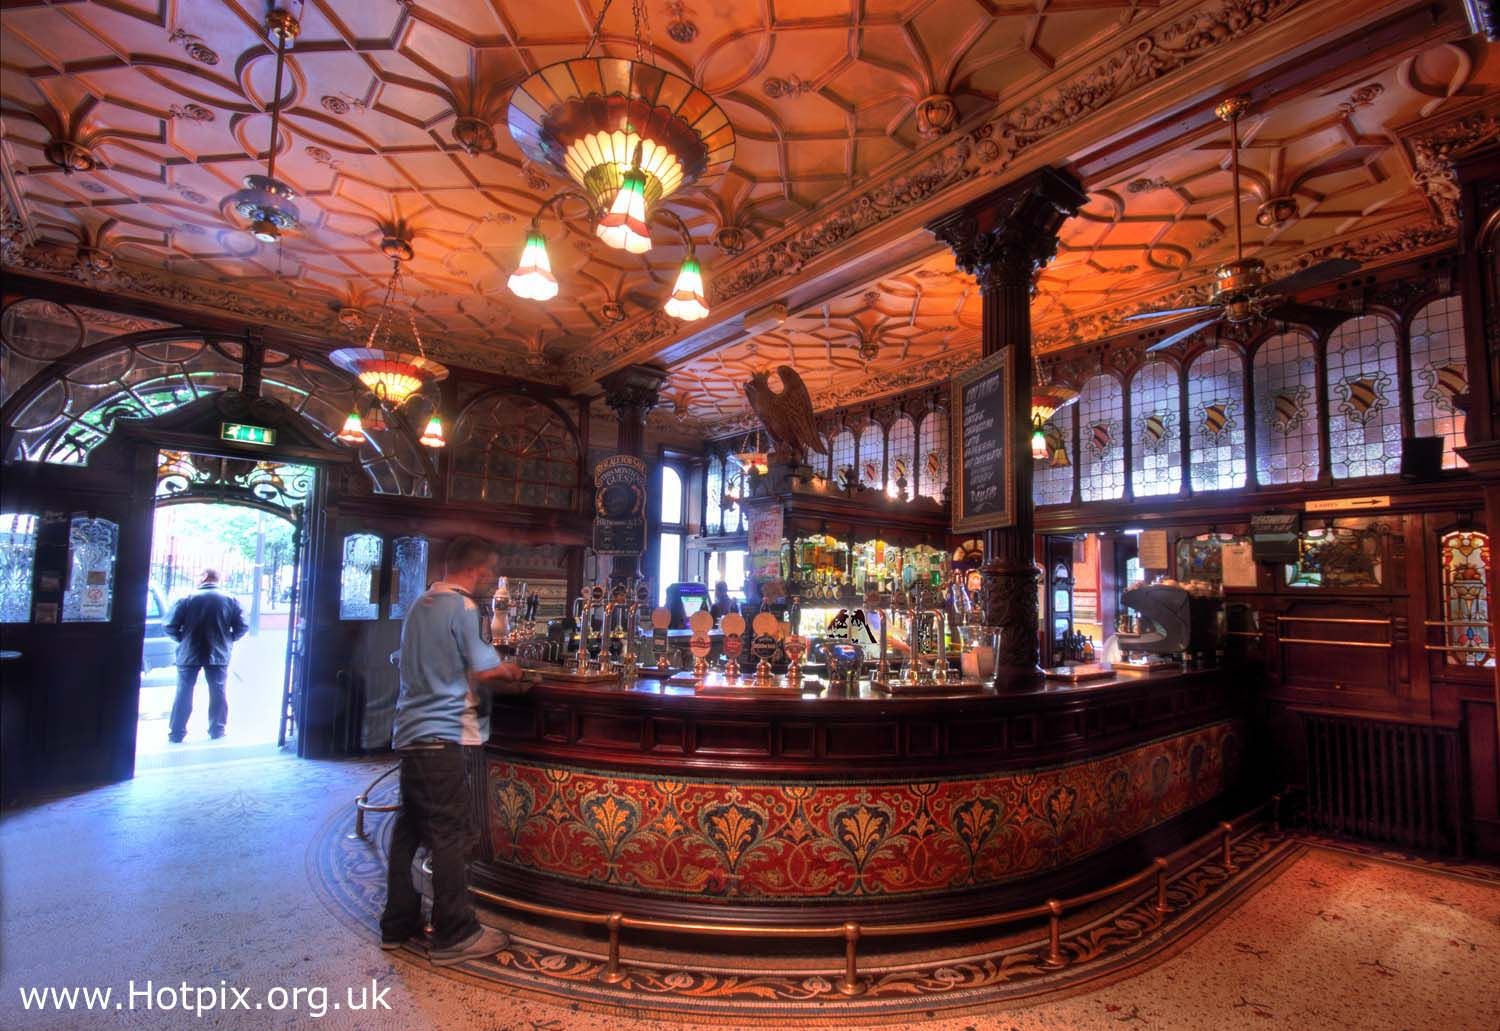 Philharmonic Dining Rooms in Liverpool,England hope street gin palace classic pubs victorian cains brewery,Liverpool,Hope,Hopestreet,street,Philharmonic,dining,rooms,pub,bar,victorian,classic,hall,gin,palace,ginpalace,mersey,merseyside,real,ale,CAMRA,art,deco,urinals,marble,Littlewoods,Tony,Smith,TonySmith,Programmer,Analyst,GMS,IT,Department,HDS,Systems,ISIS,Payroll,Canon,D50,D500,D450,D400,SLR,DSLR,365days,www.thewdcc.org.uk,thewdcc.org.uk,wdcc.org.uk,Warrington,society,District,Camera,club,photographic,photography,group,GYCA,Bellhouse,bellhouse Club,beer,drinks,this photo rocks,HDR,high dynamic range,city,town,engalnd,old,english,customs,Phil,stuff